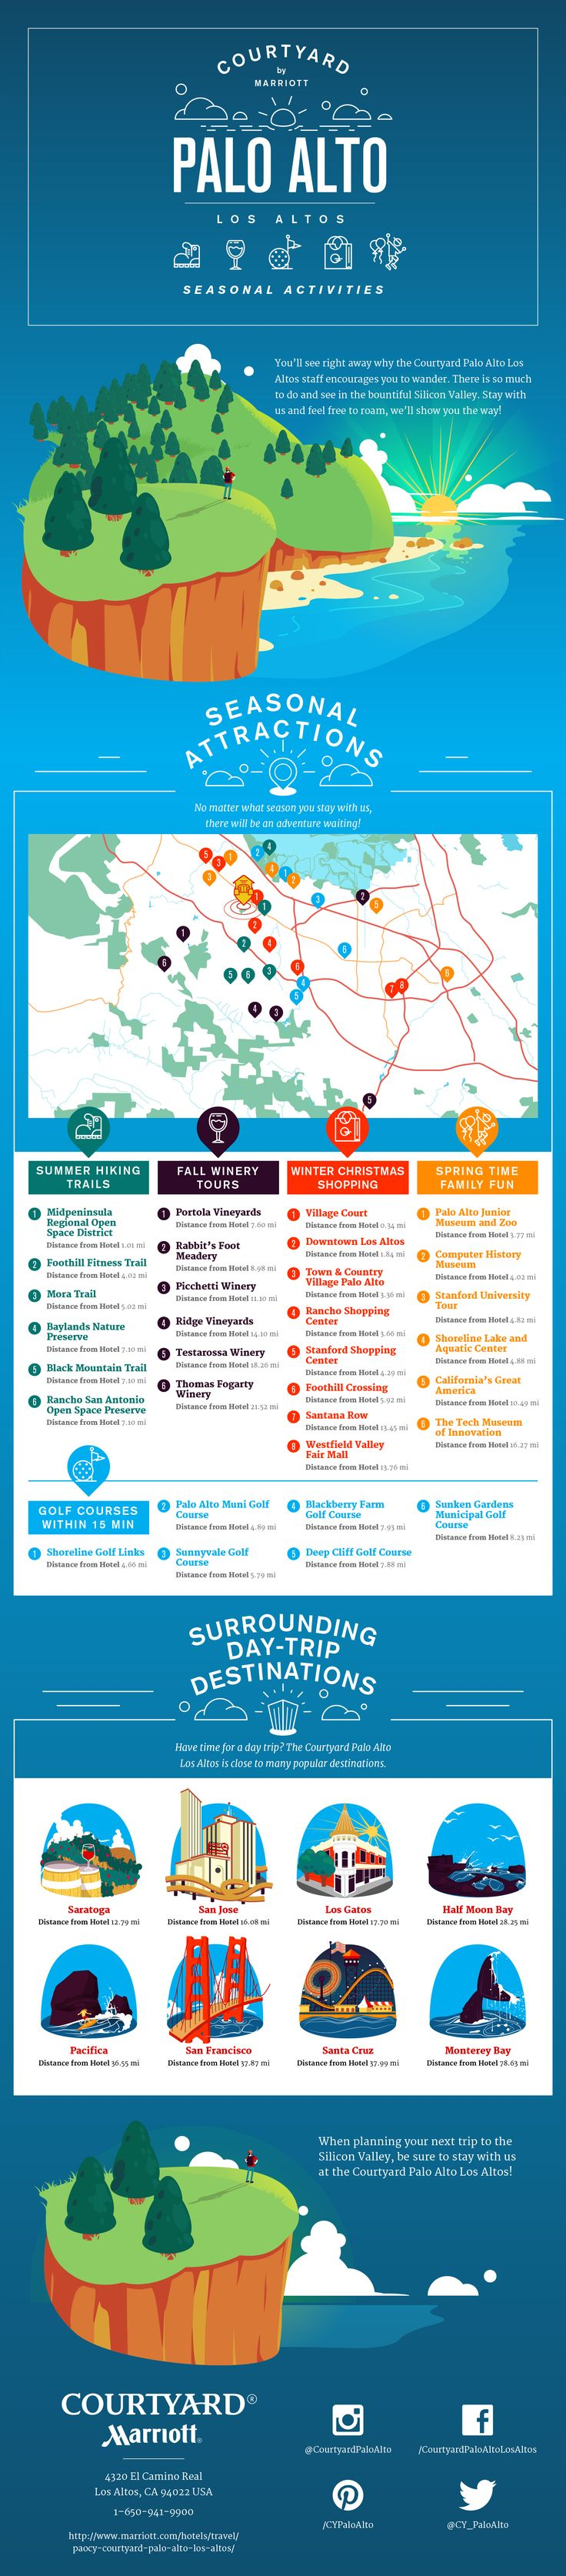 #Silicon Valley Activities For All Seasons - Do you fancy an infographic? There are a lot of them online, but if you want your own please visit http://www.linfografico.com/prezzi/ Online girano molte infografiche, se ne vuoi realizzare una tutta tua visita http://www.linfografico.com/prezzi/